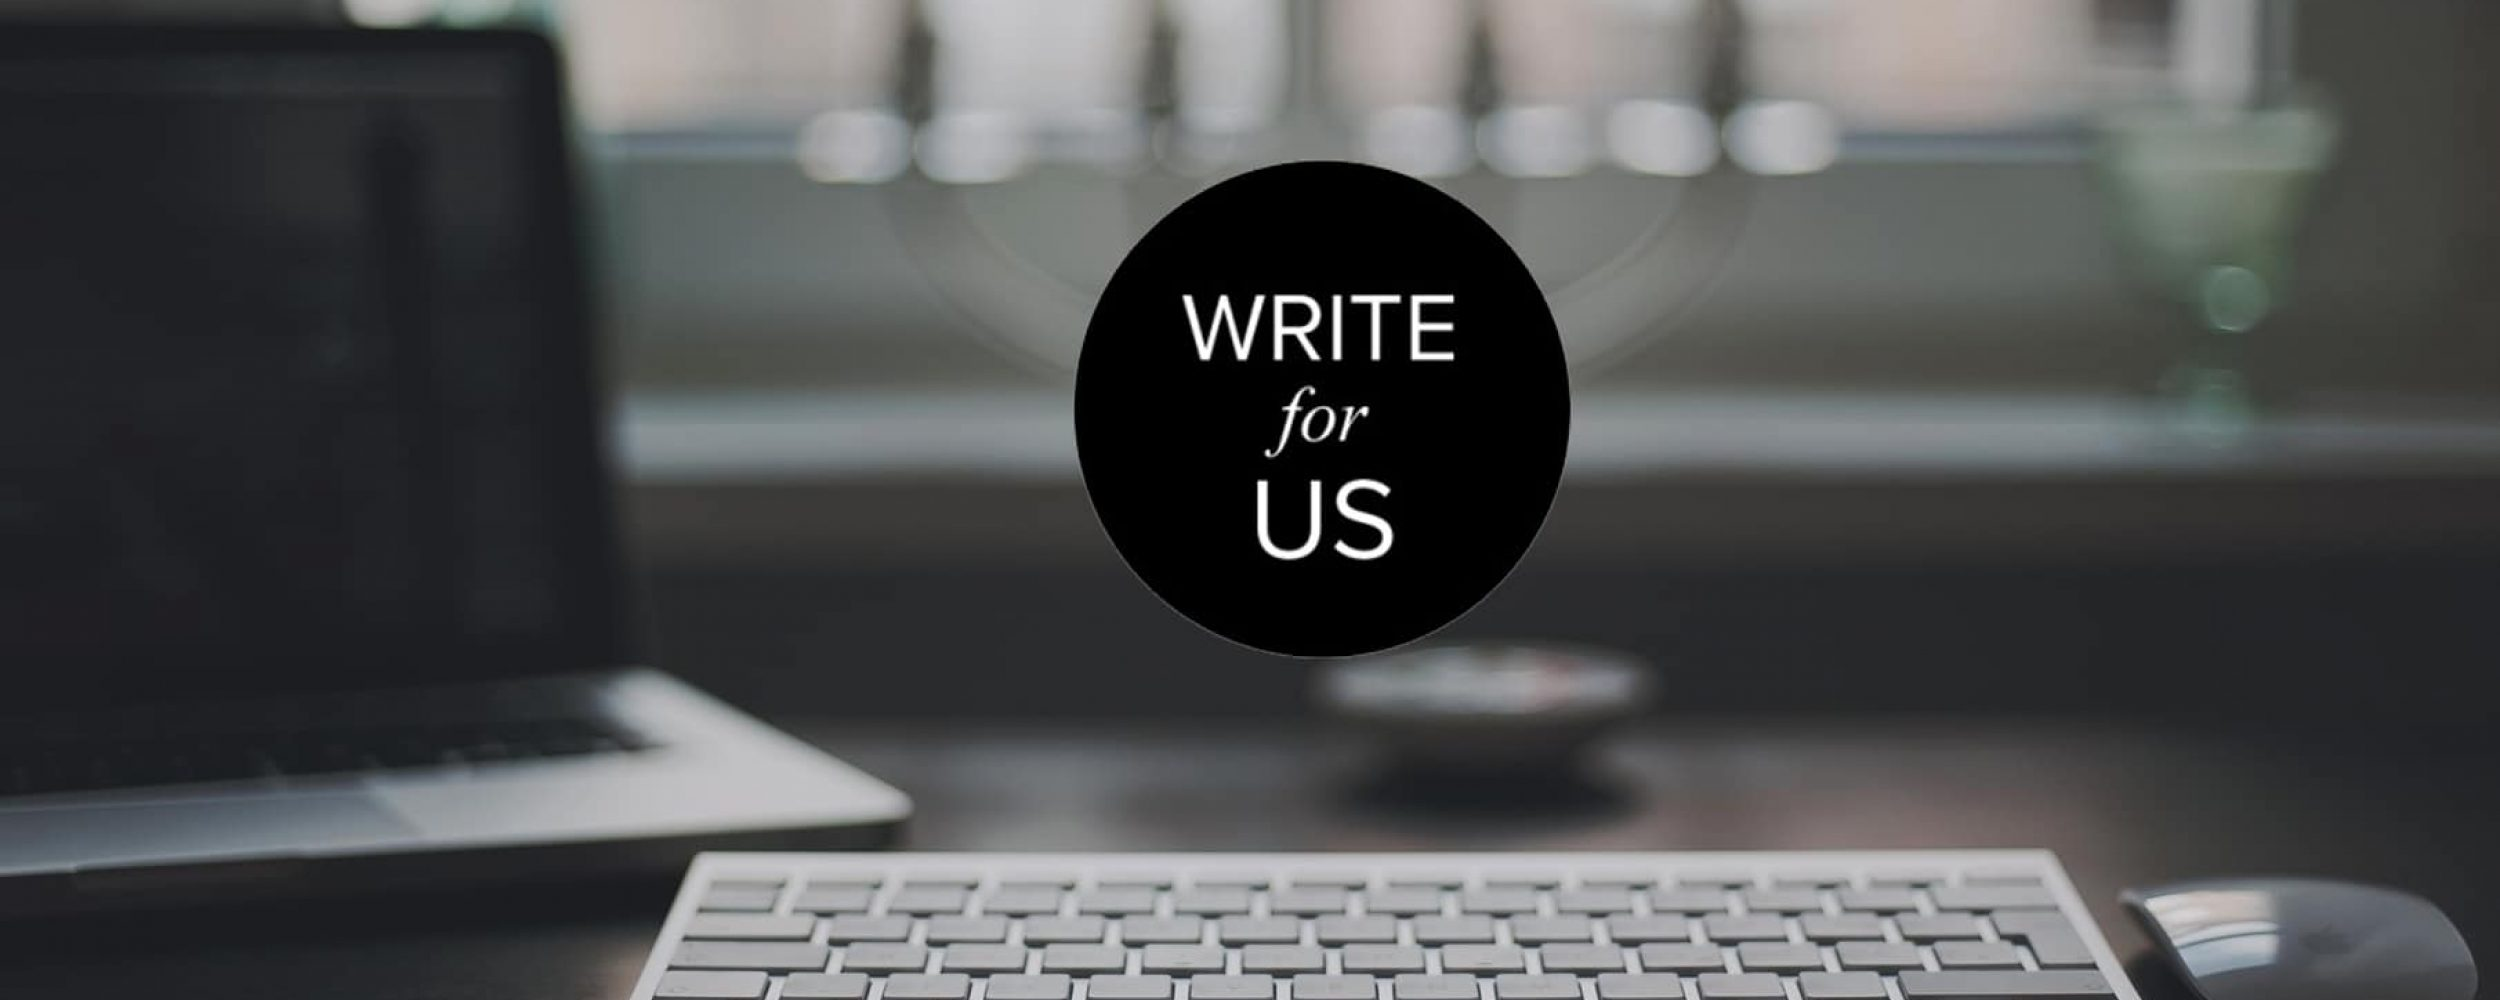 Share Your Latest Ideas & Thoughts With HD-UK Post | Write For US